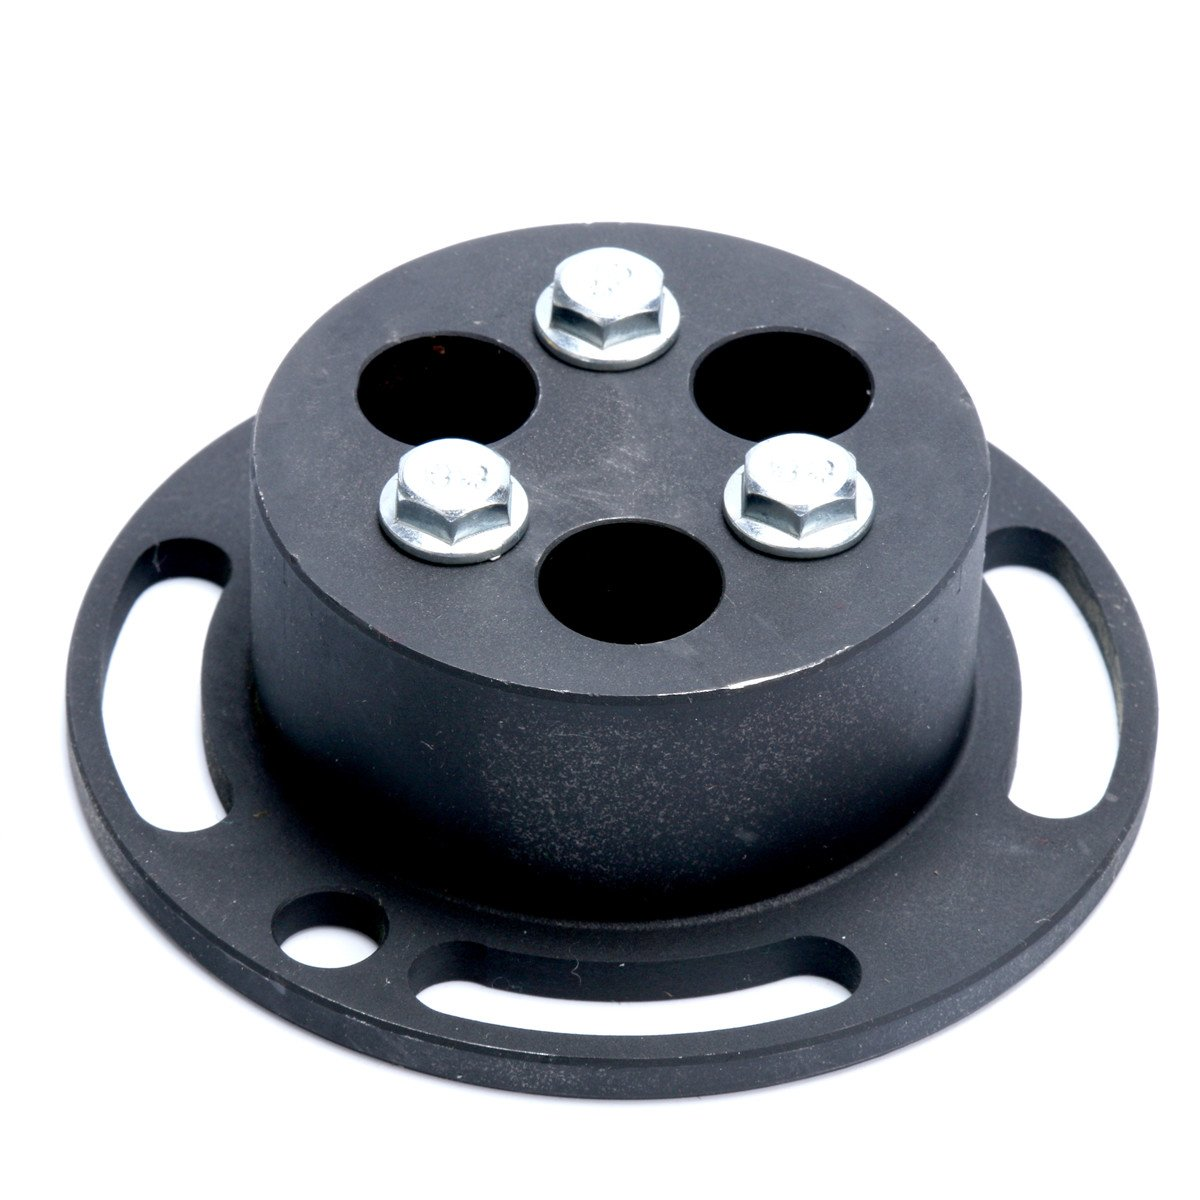 8milelake Water Pump Sprocket Retainer Holding Tool for GM Vauxhall OPEL 2.2 Chain Drive Garage Tools freebirdtrading